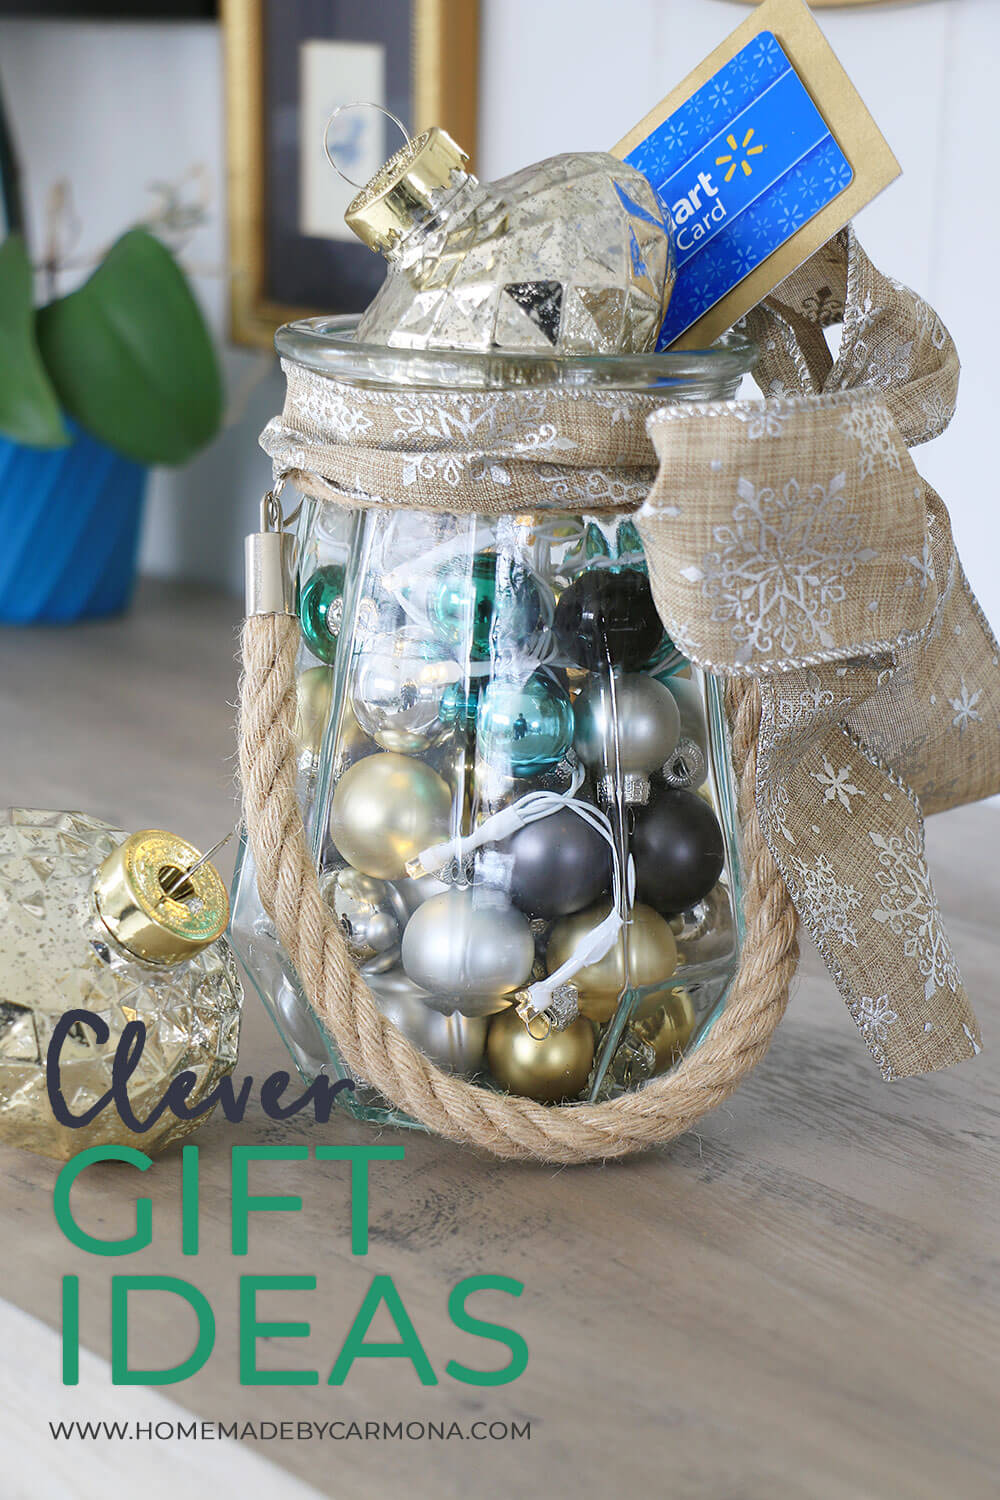 Clever-Gift-Ideas